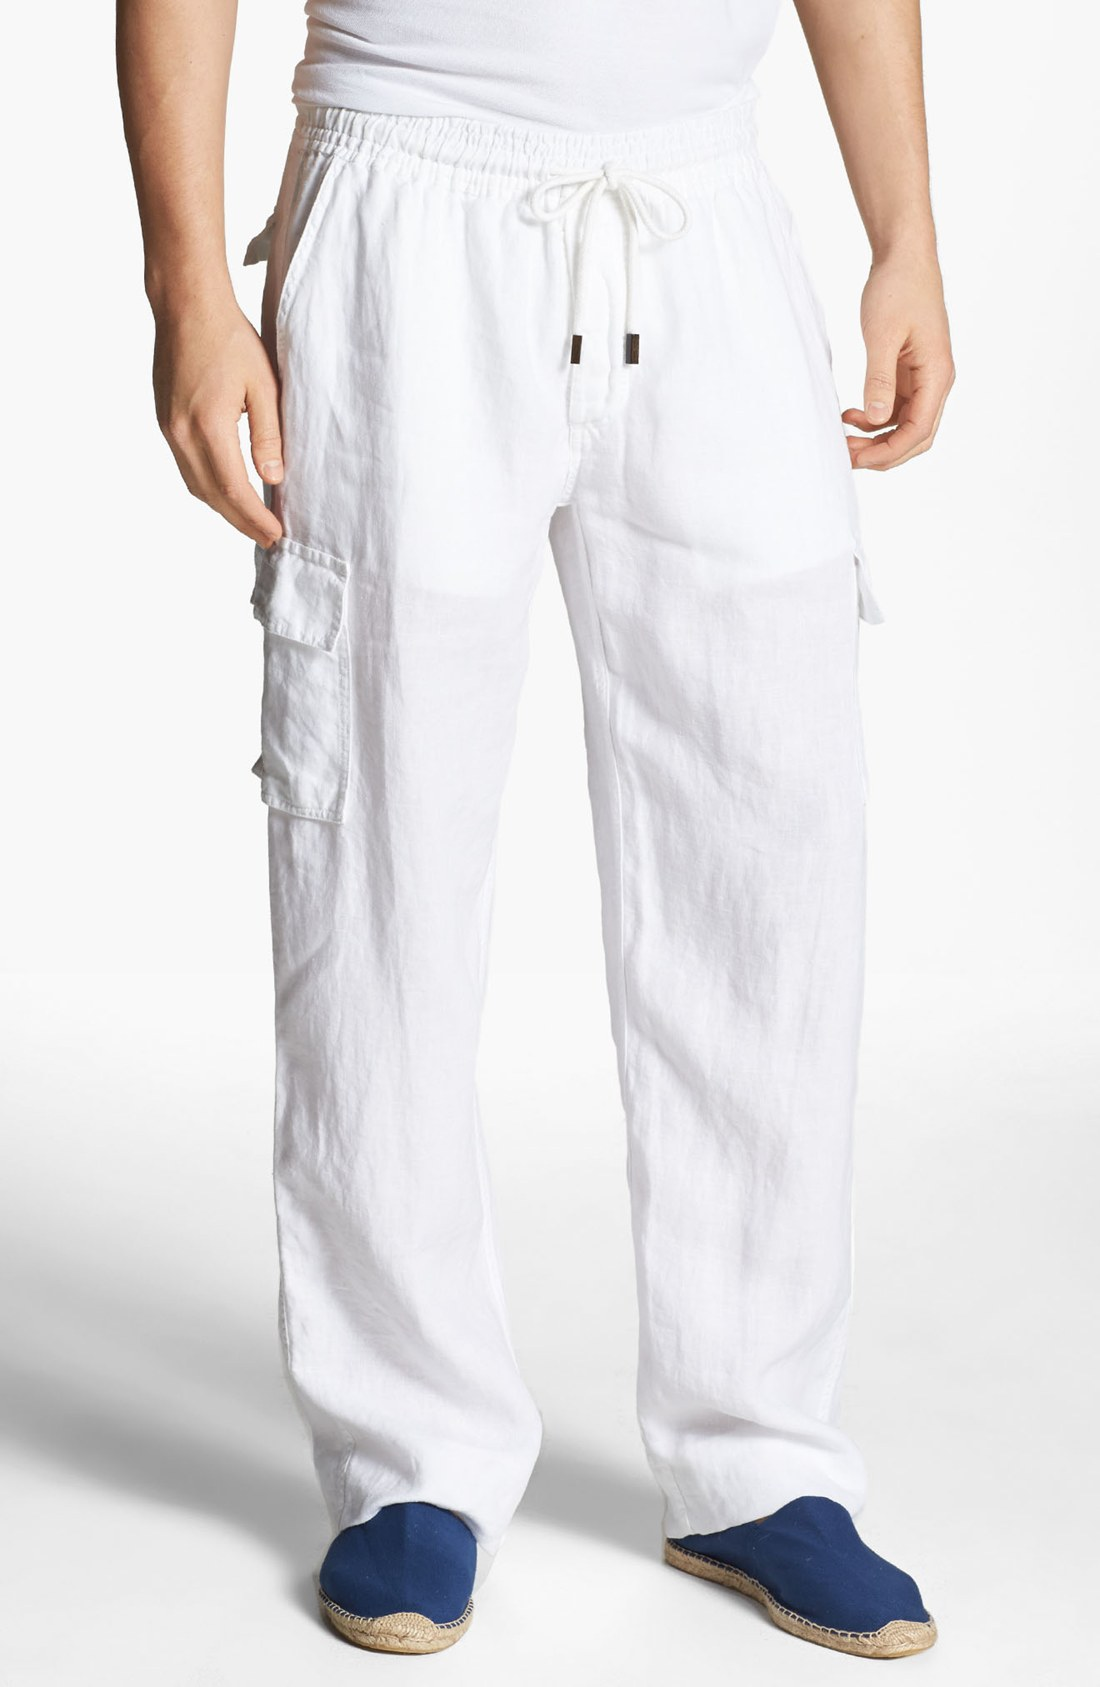 See all results for men's white linen pants. Hoerev. Brand Men Casual Beach Trousers Linen Jean Jacket Summer Pants $ 20 99 Prime. 4 out of 5 stars downiloadojg.gq Men's Drawstring Casual Beach Trousers Linen Summer Pants. from $ 18 99 Prime. out of 5 stars Cubavera. Men's Drawstring Pant Back Elastic Waistband.